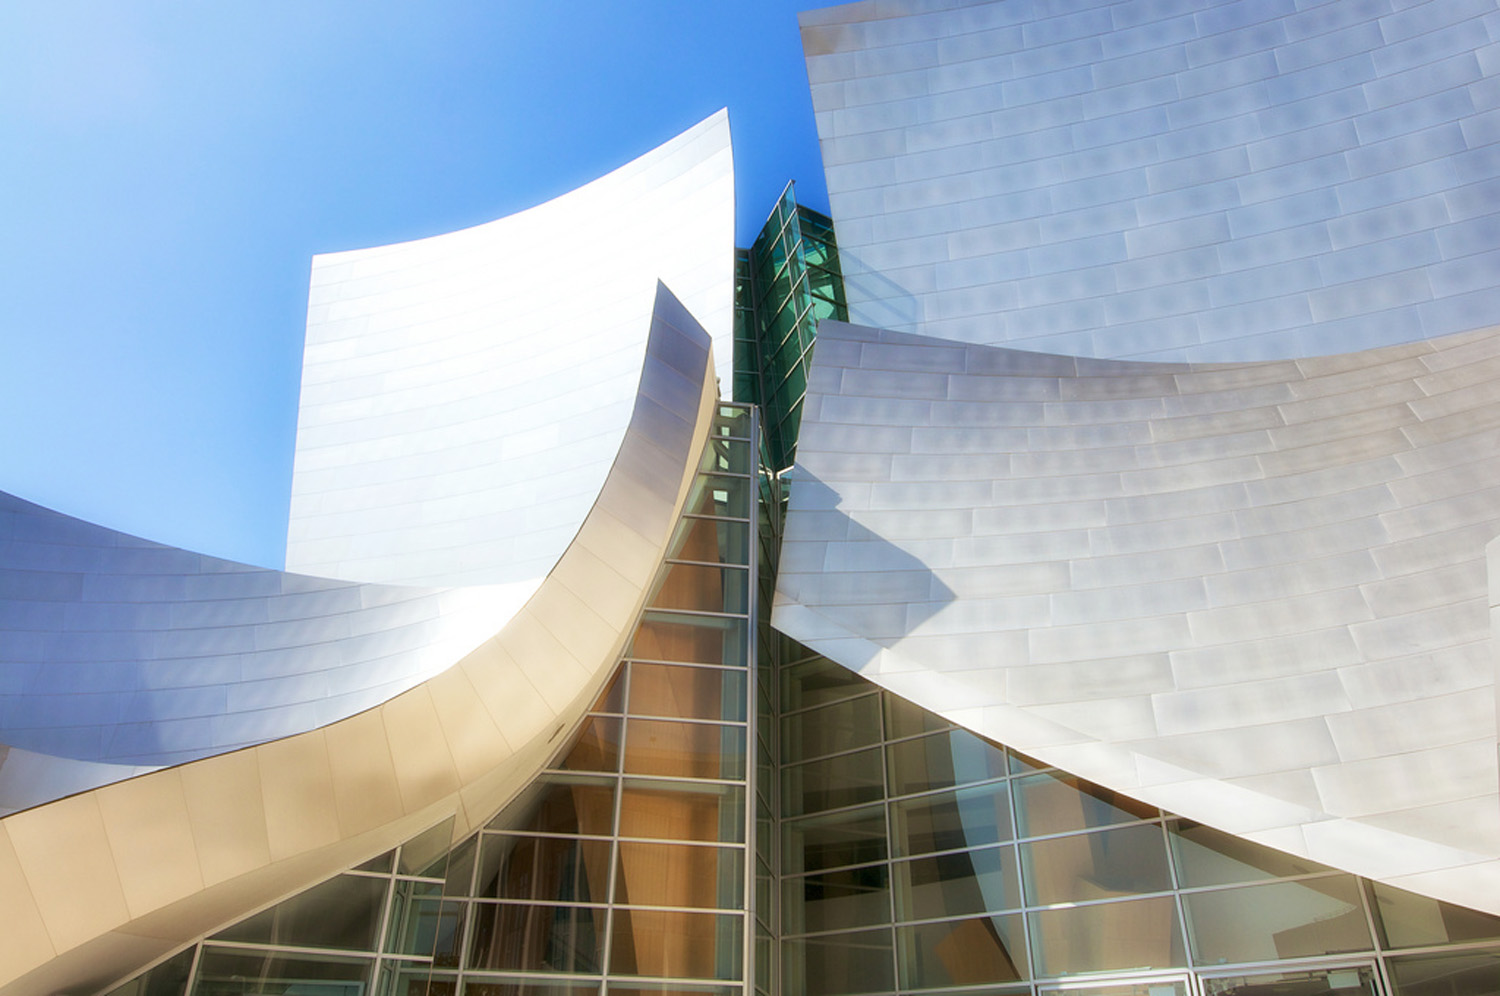 mm_Walt Disney Concert Hall design by Frank Gehry_07